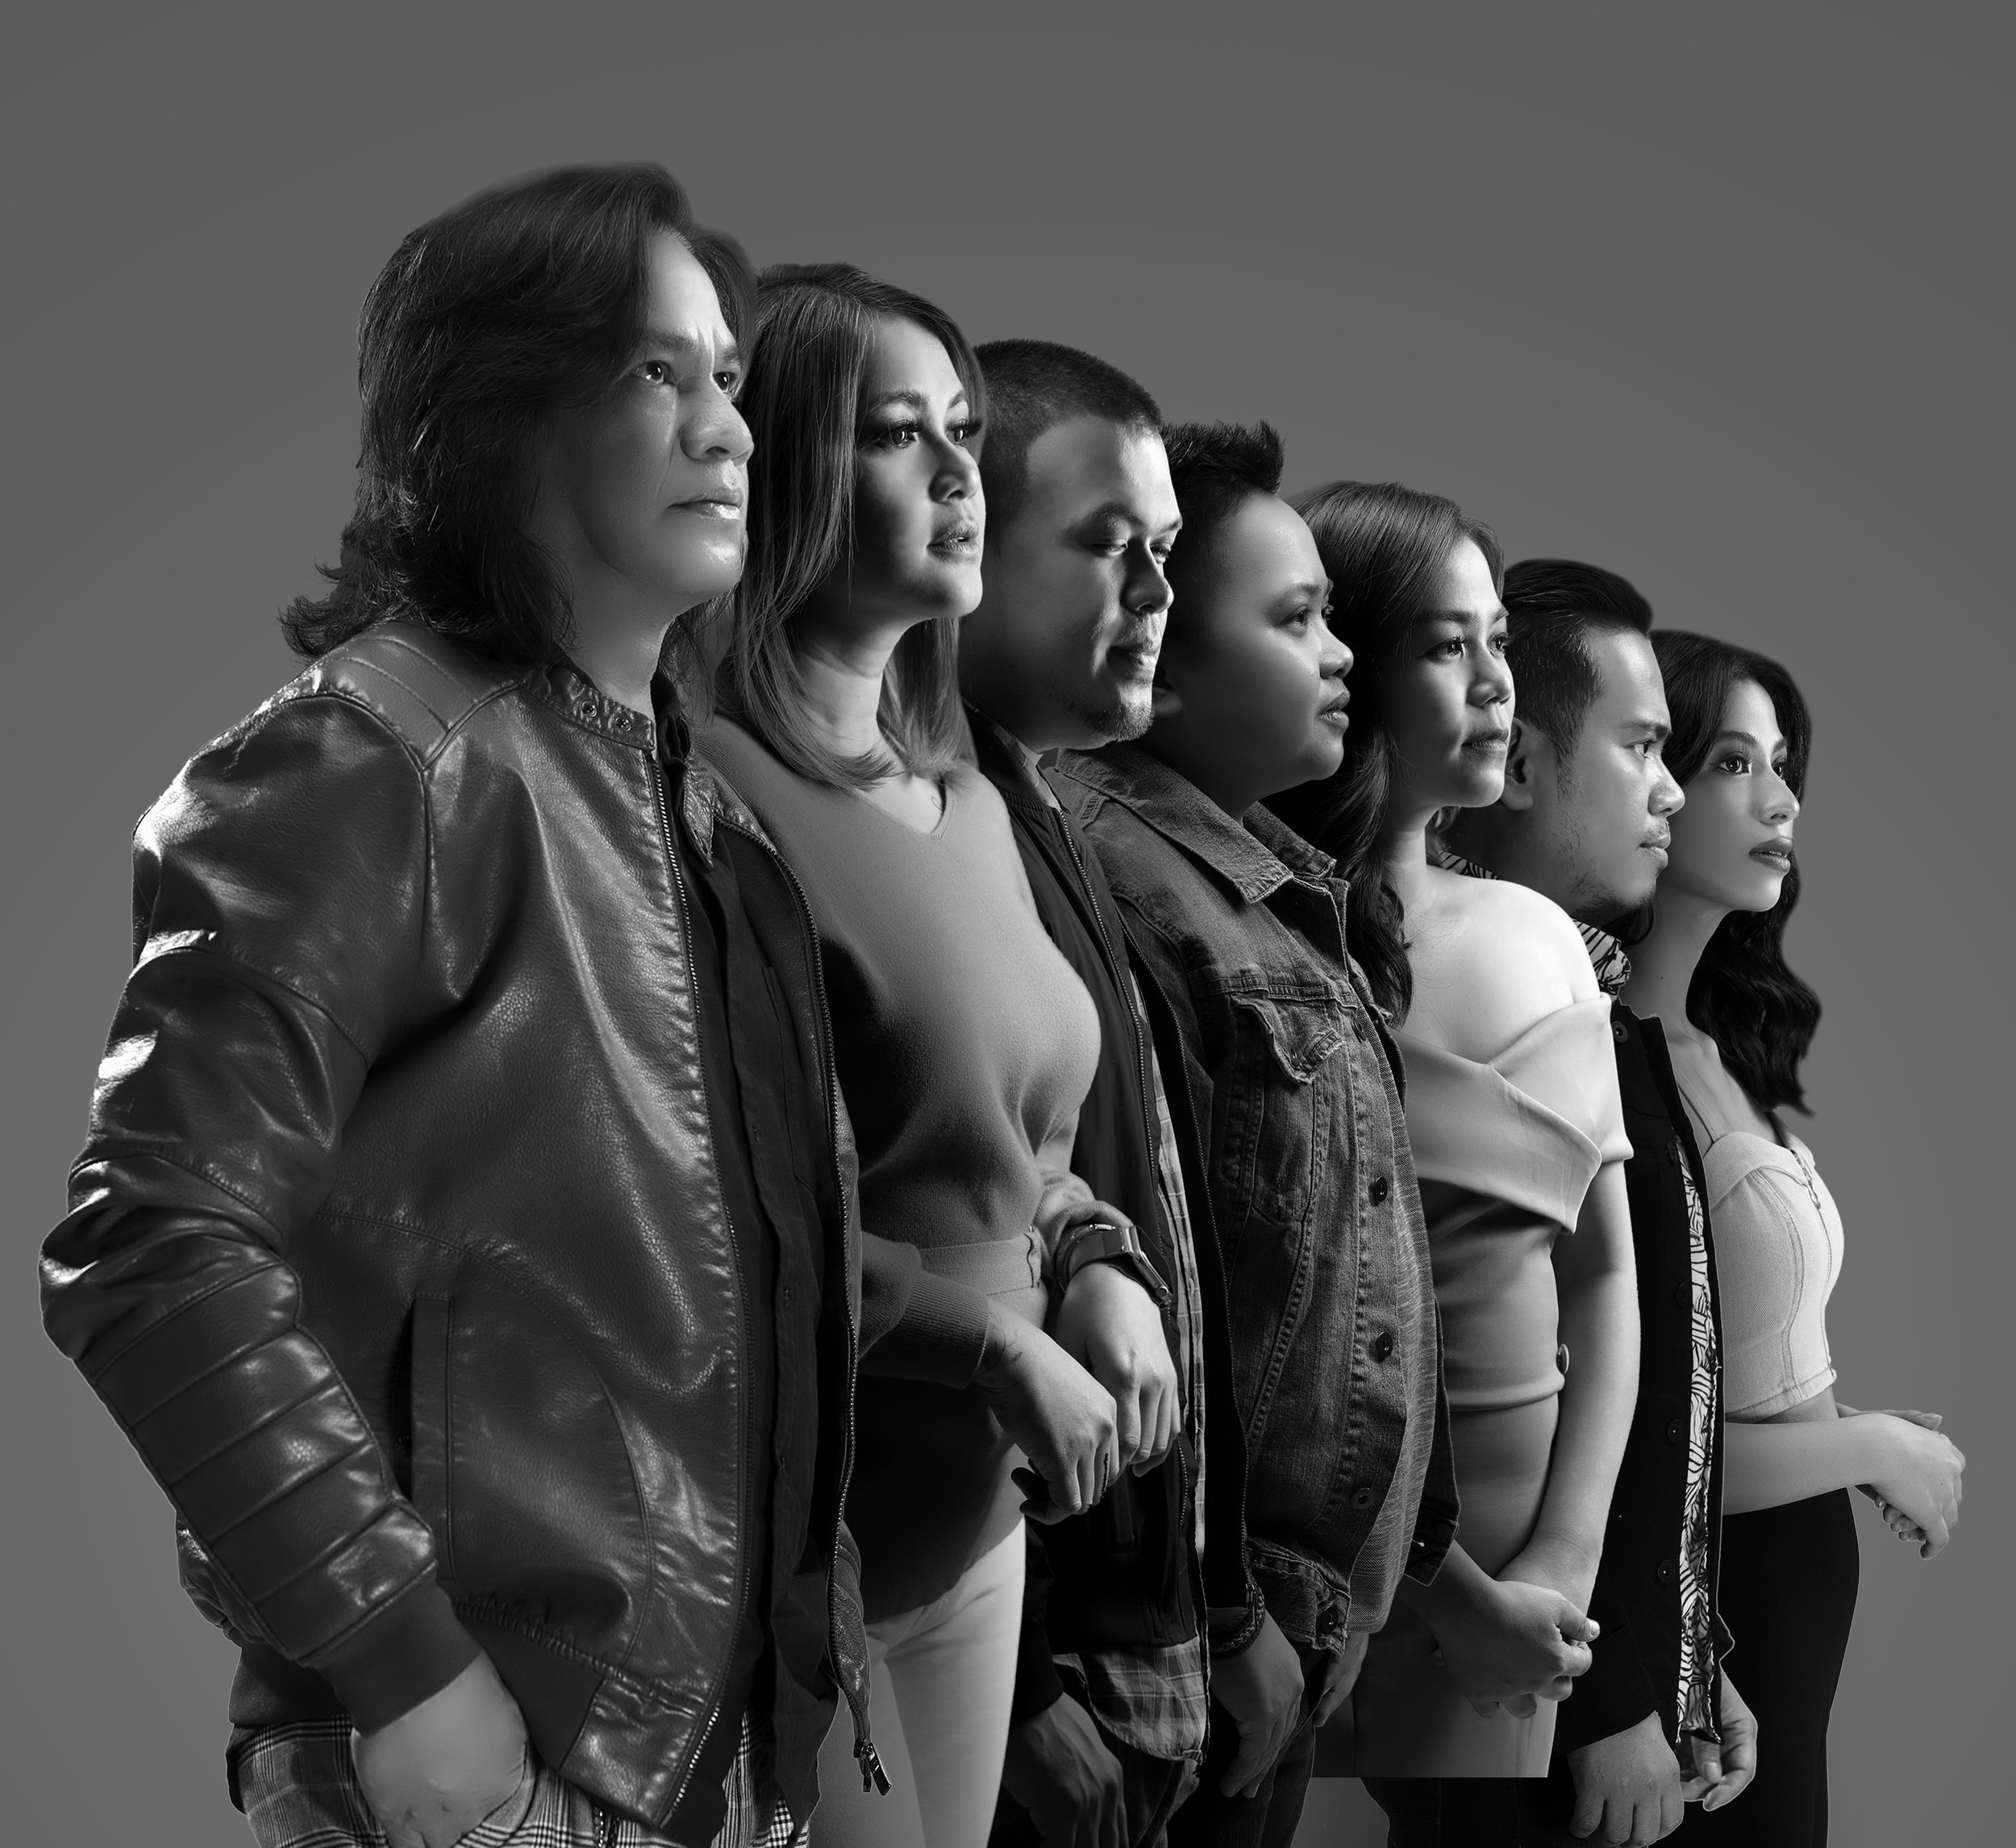 Joey Generoso, Jinky Vidal, Jay Durias, Ice Seguerra, Juris Fernandez, Meds Marfil, and Janine Tenoso are the featured performers in Playlist:The Best of OPM